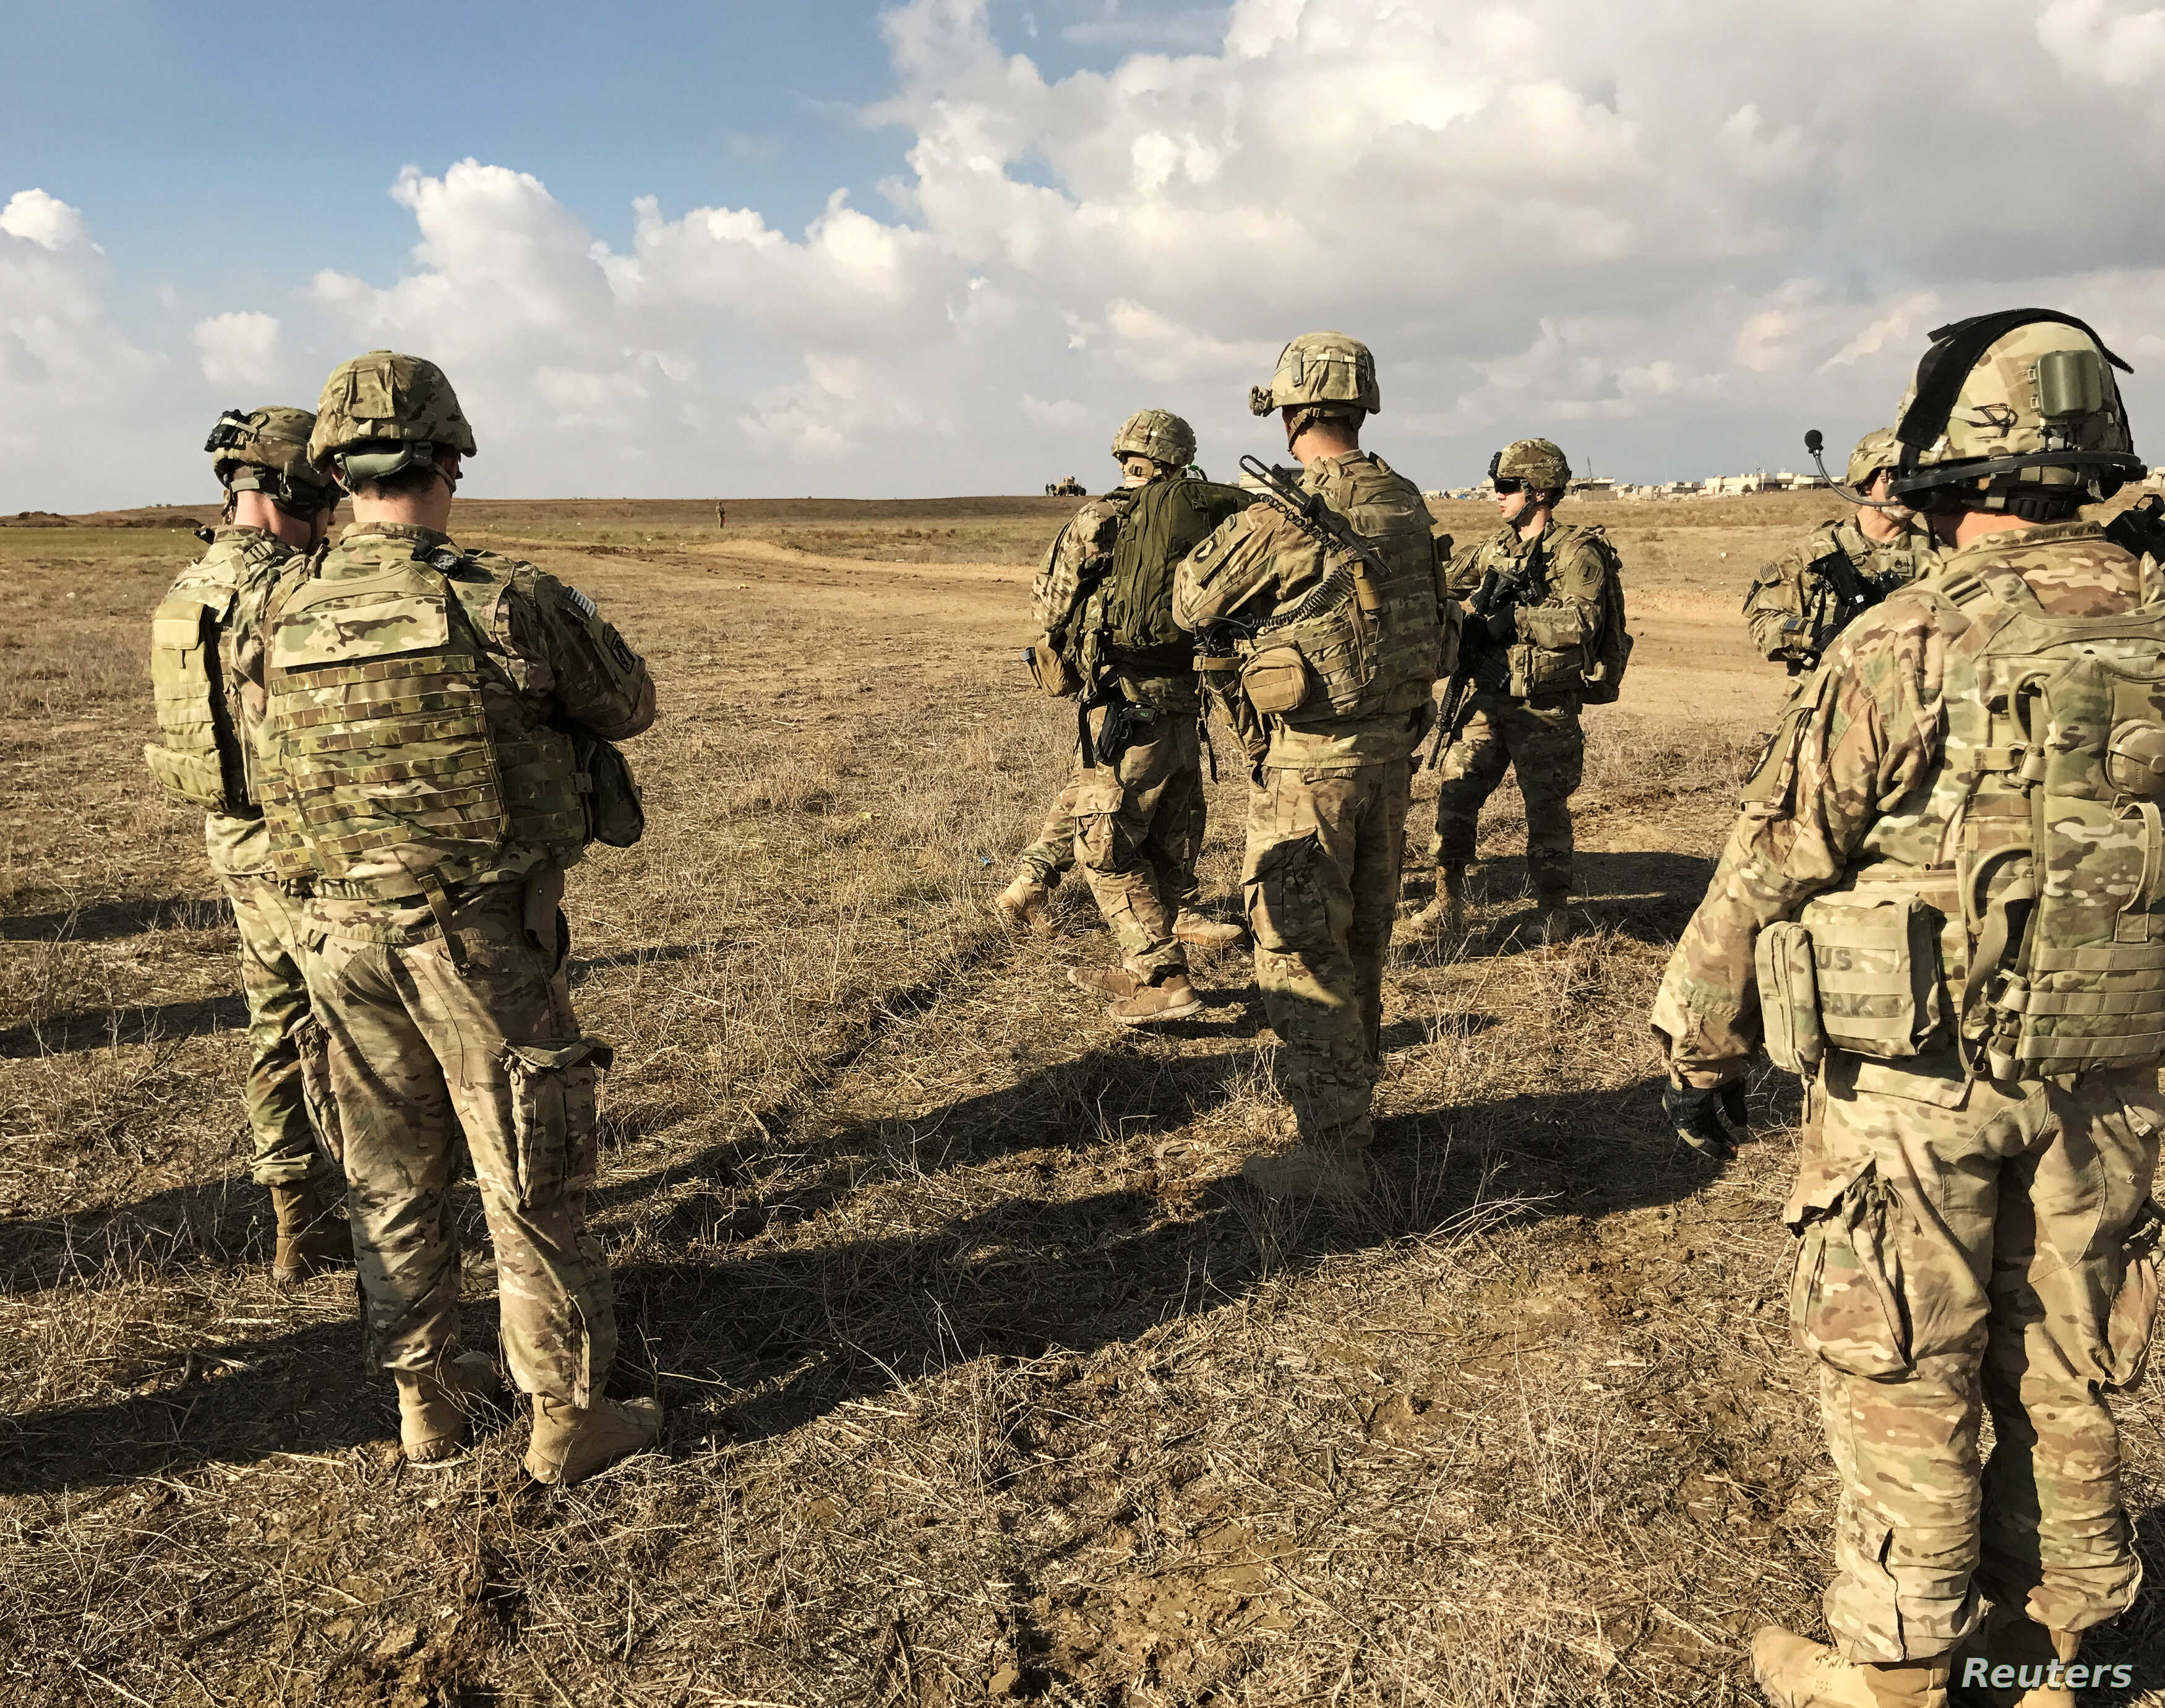 U.S. soldiers gather at a military base north of Mosul, Iraq, Jan. 4, 2017. The Pentagon has doubled the number of its military advisers in Iraq, brining the total to 450.